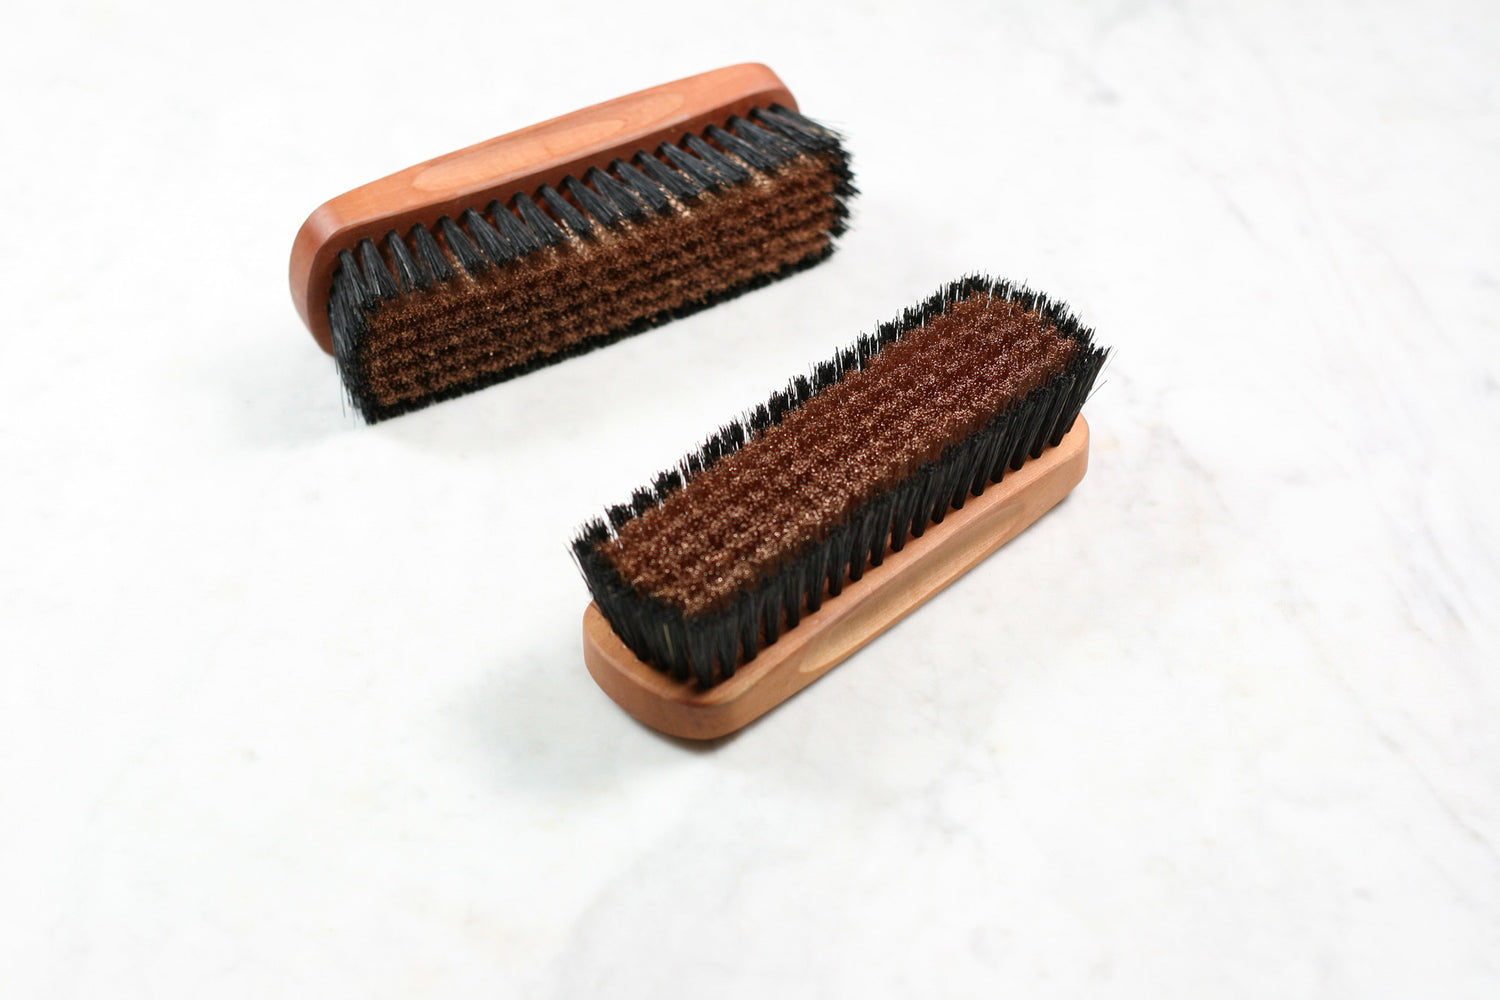 Burstenhaus Redecker sweater brush with natural and bronze bristles.